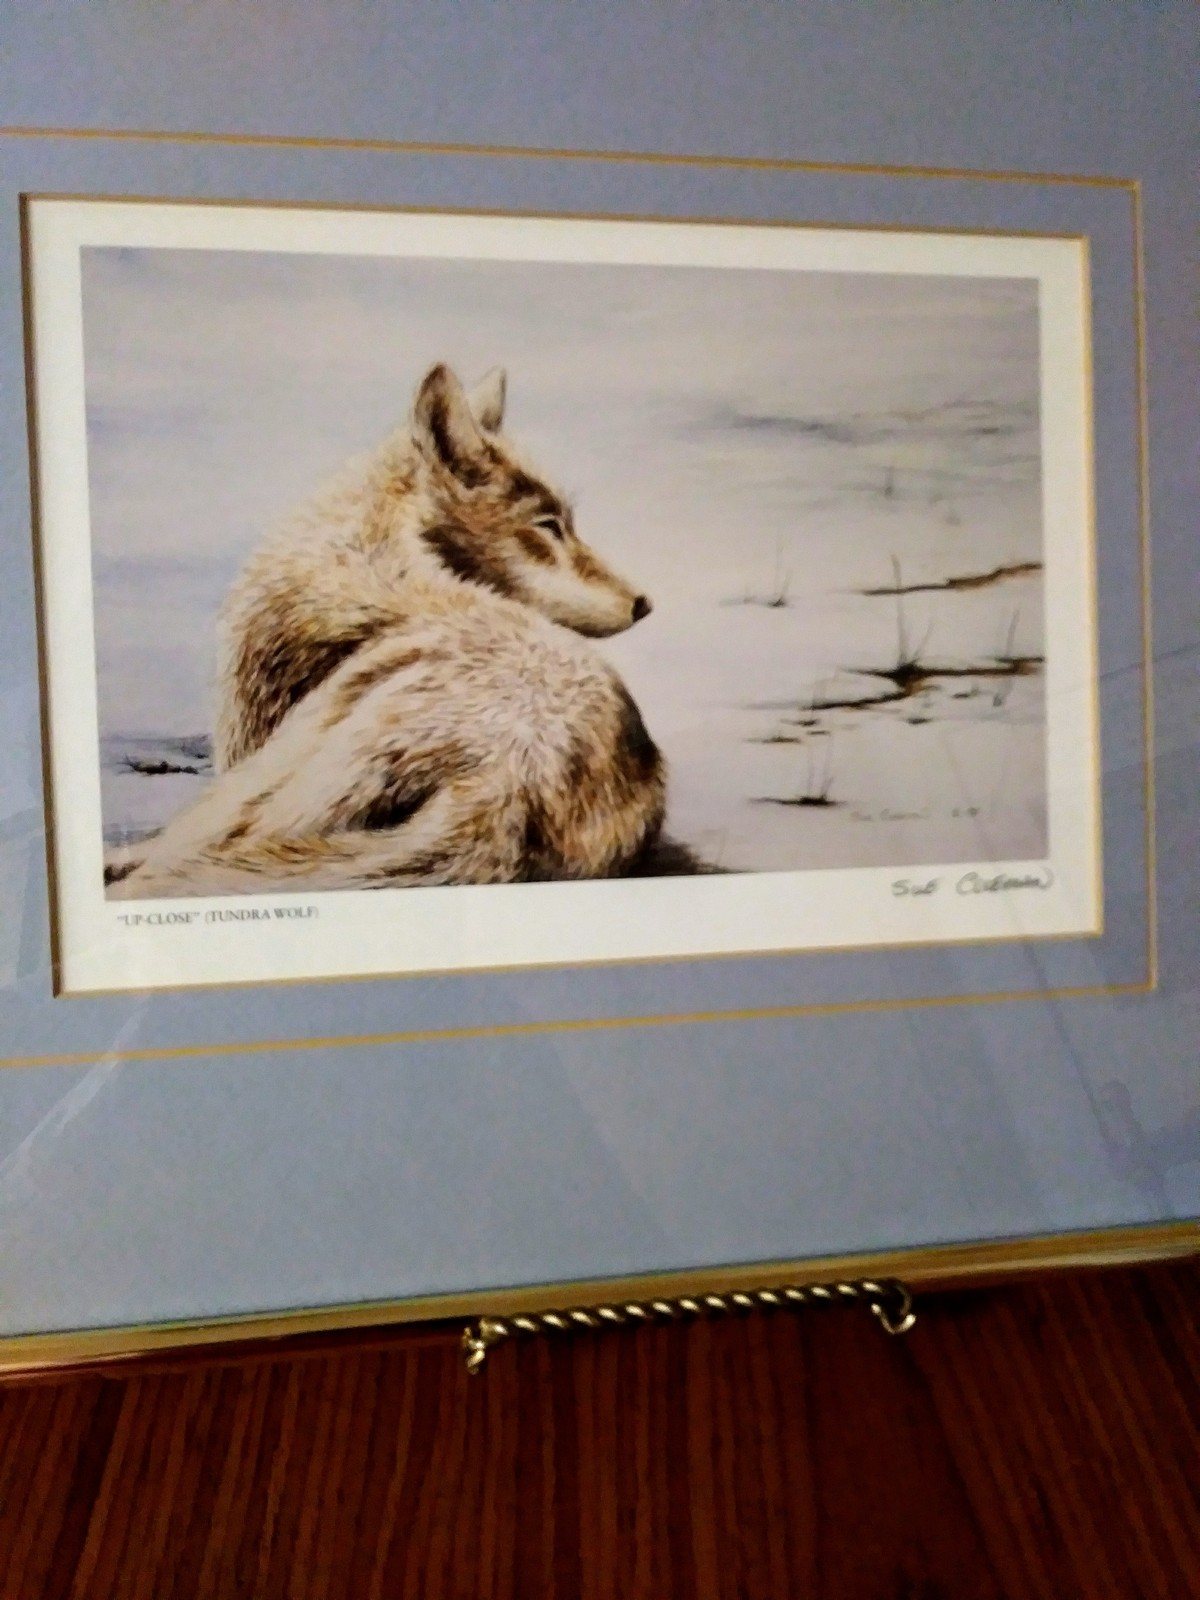 Up Close (Tundra Wolf)  Sue Coleman 1988 Art Work Print Framed Matted Gold Frame